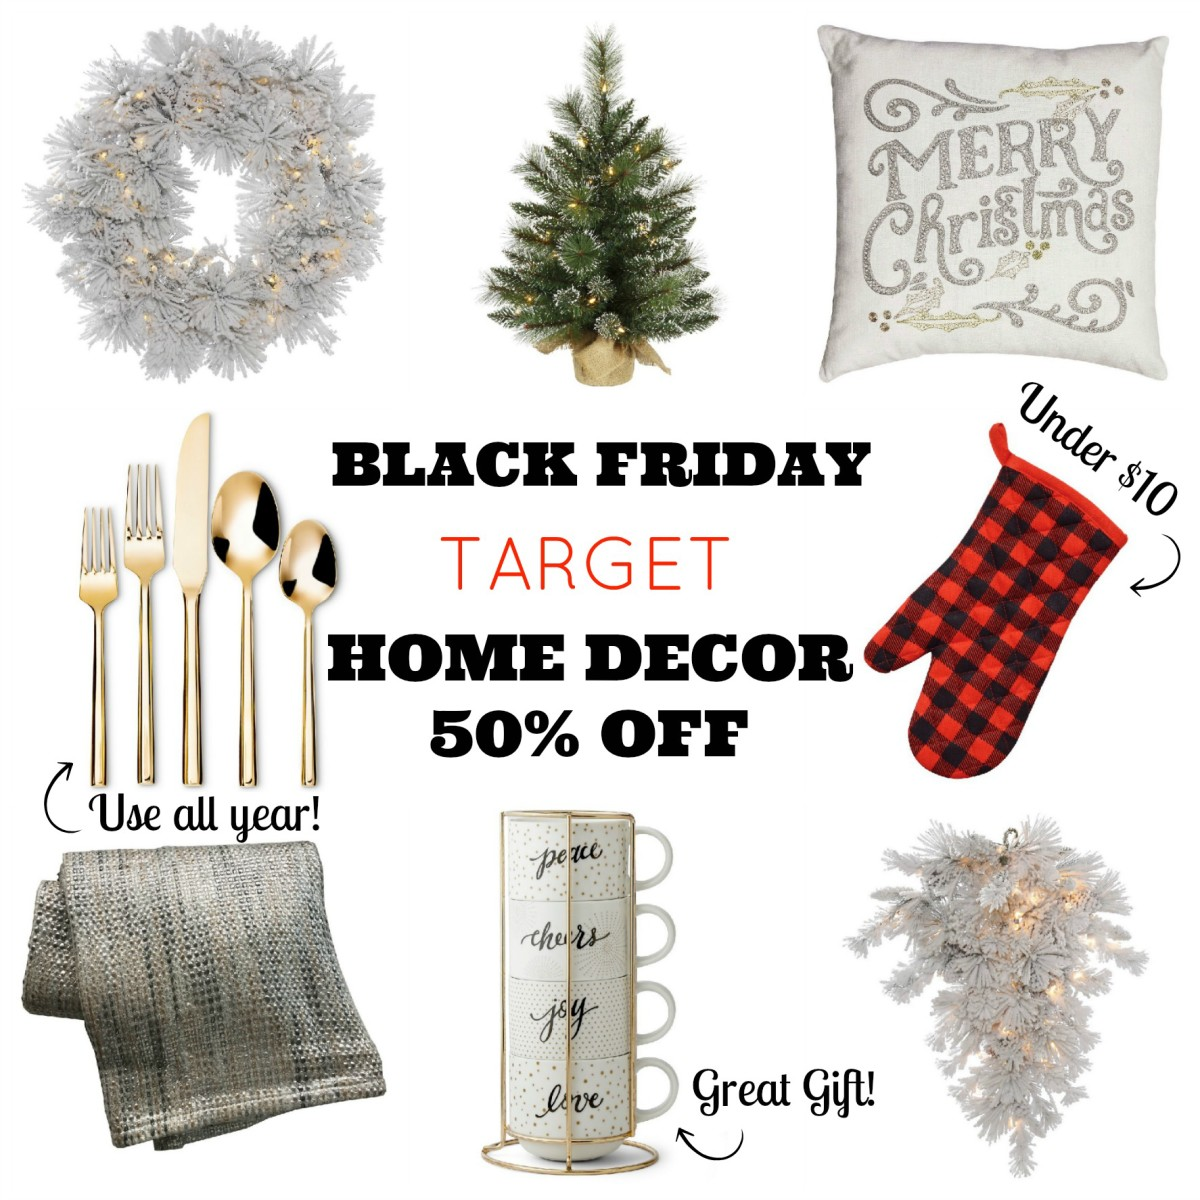 black friday deals target home decor - Black Friday Deals Christmas Decorations